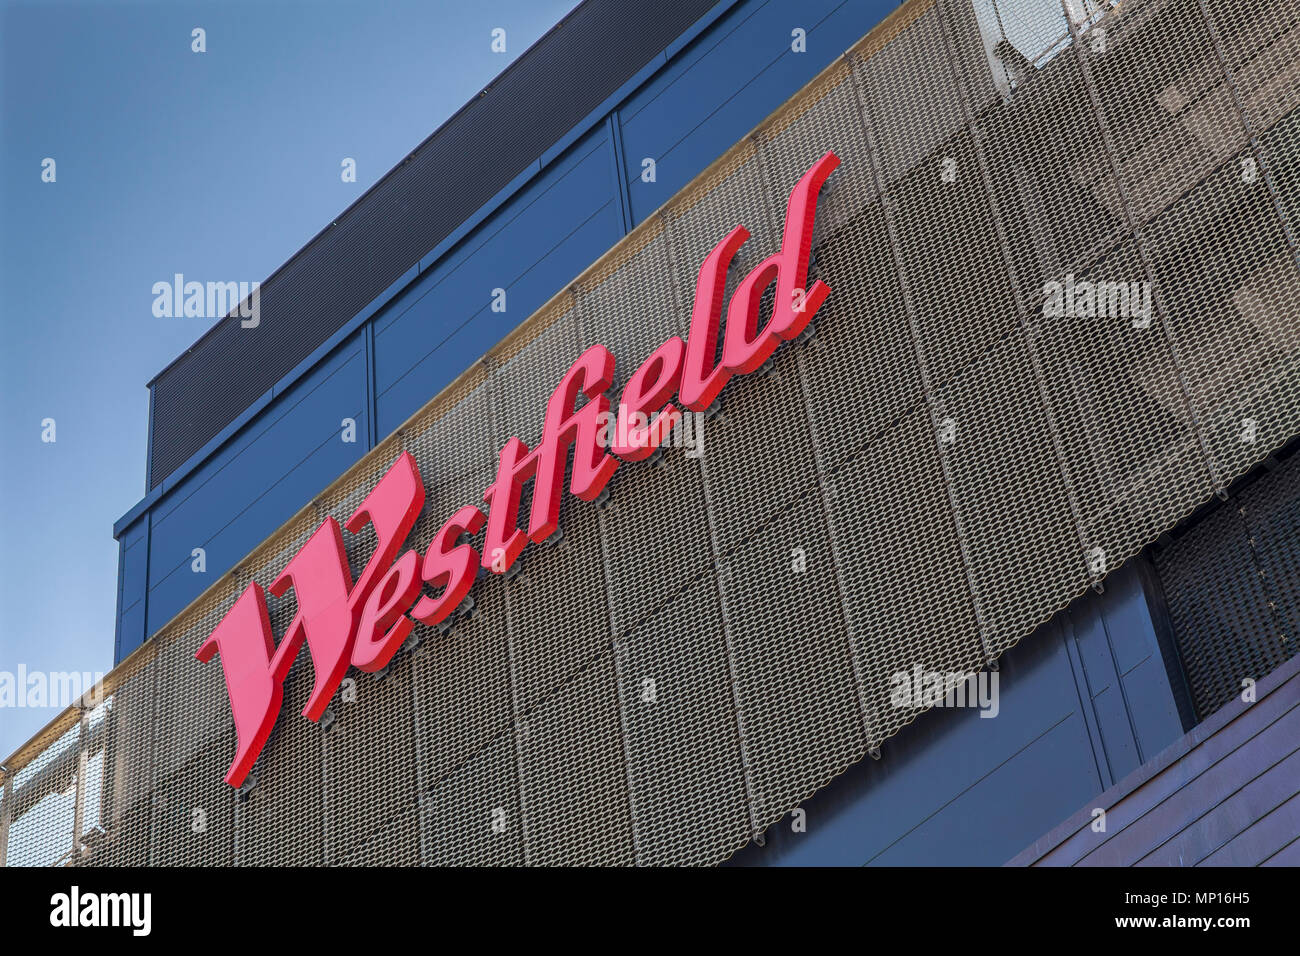 Westfield shopping centre at Stratford, London Stock Photo